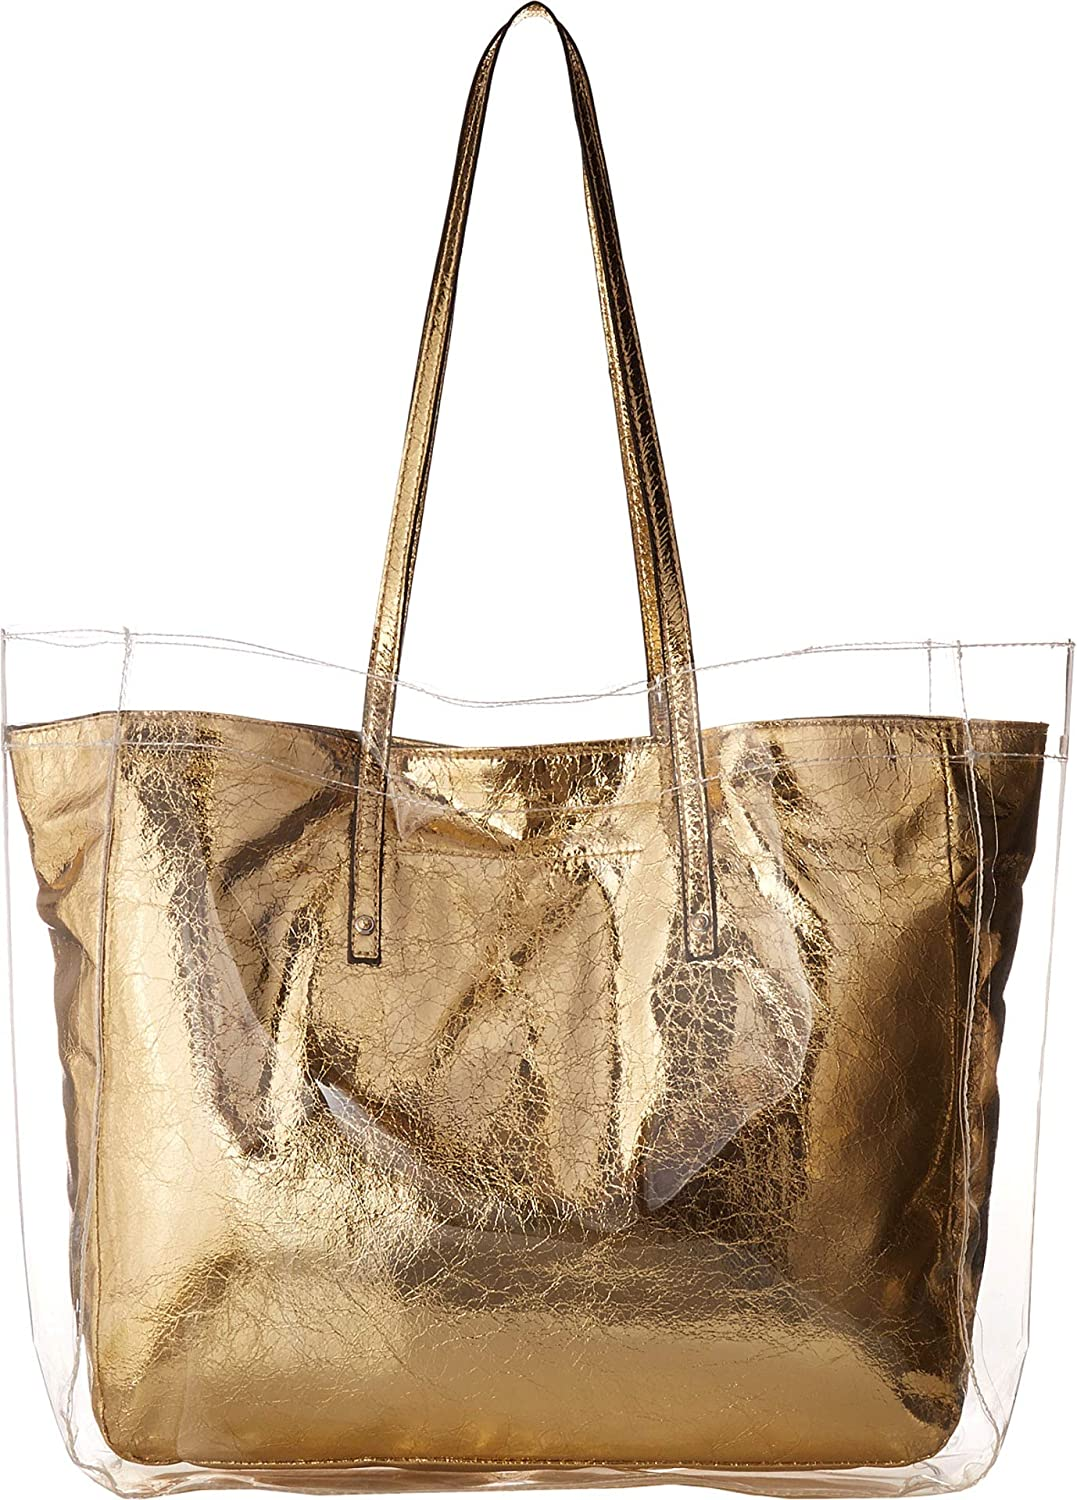 914d57ae5cc ALDO Women s Dororis Gold One Size  Handbags  Amazon.com